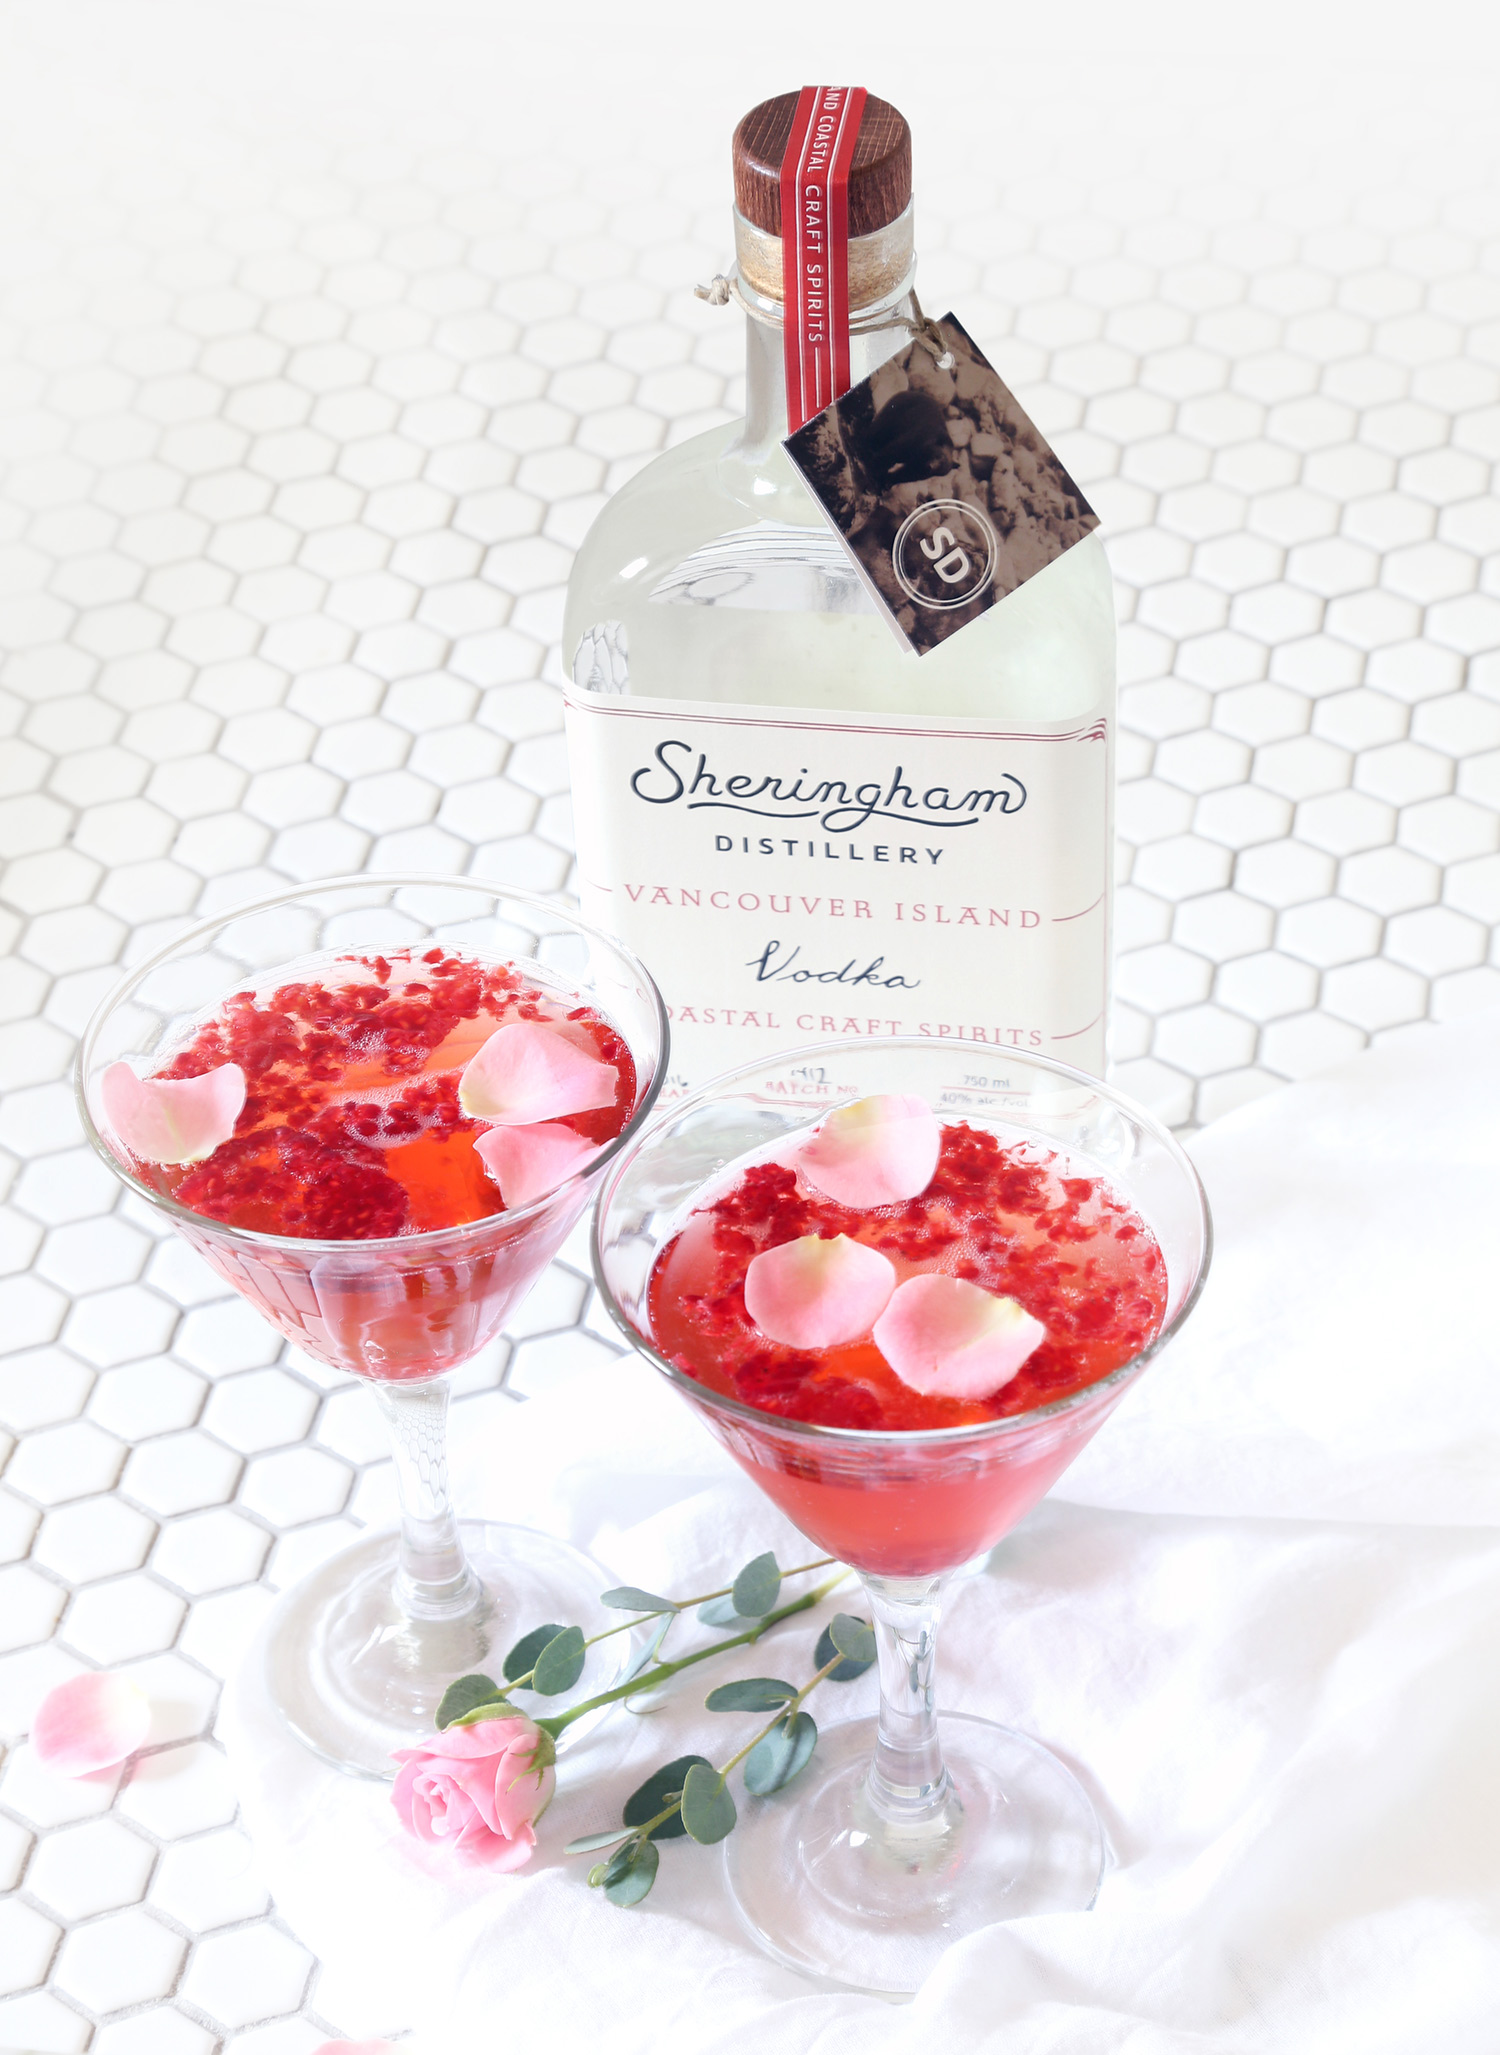 sheringham_distillery_vodka_recipes_1.jpg